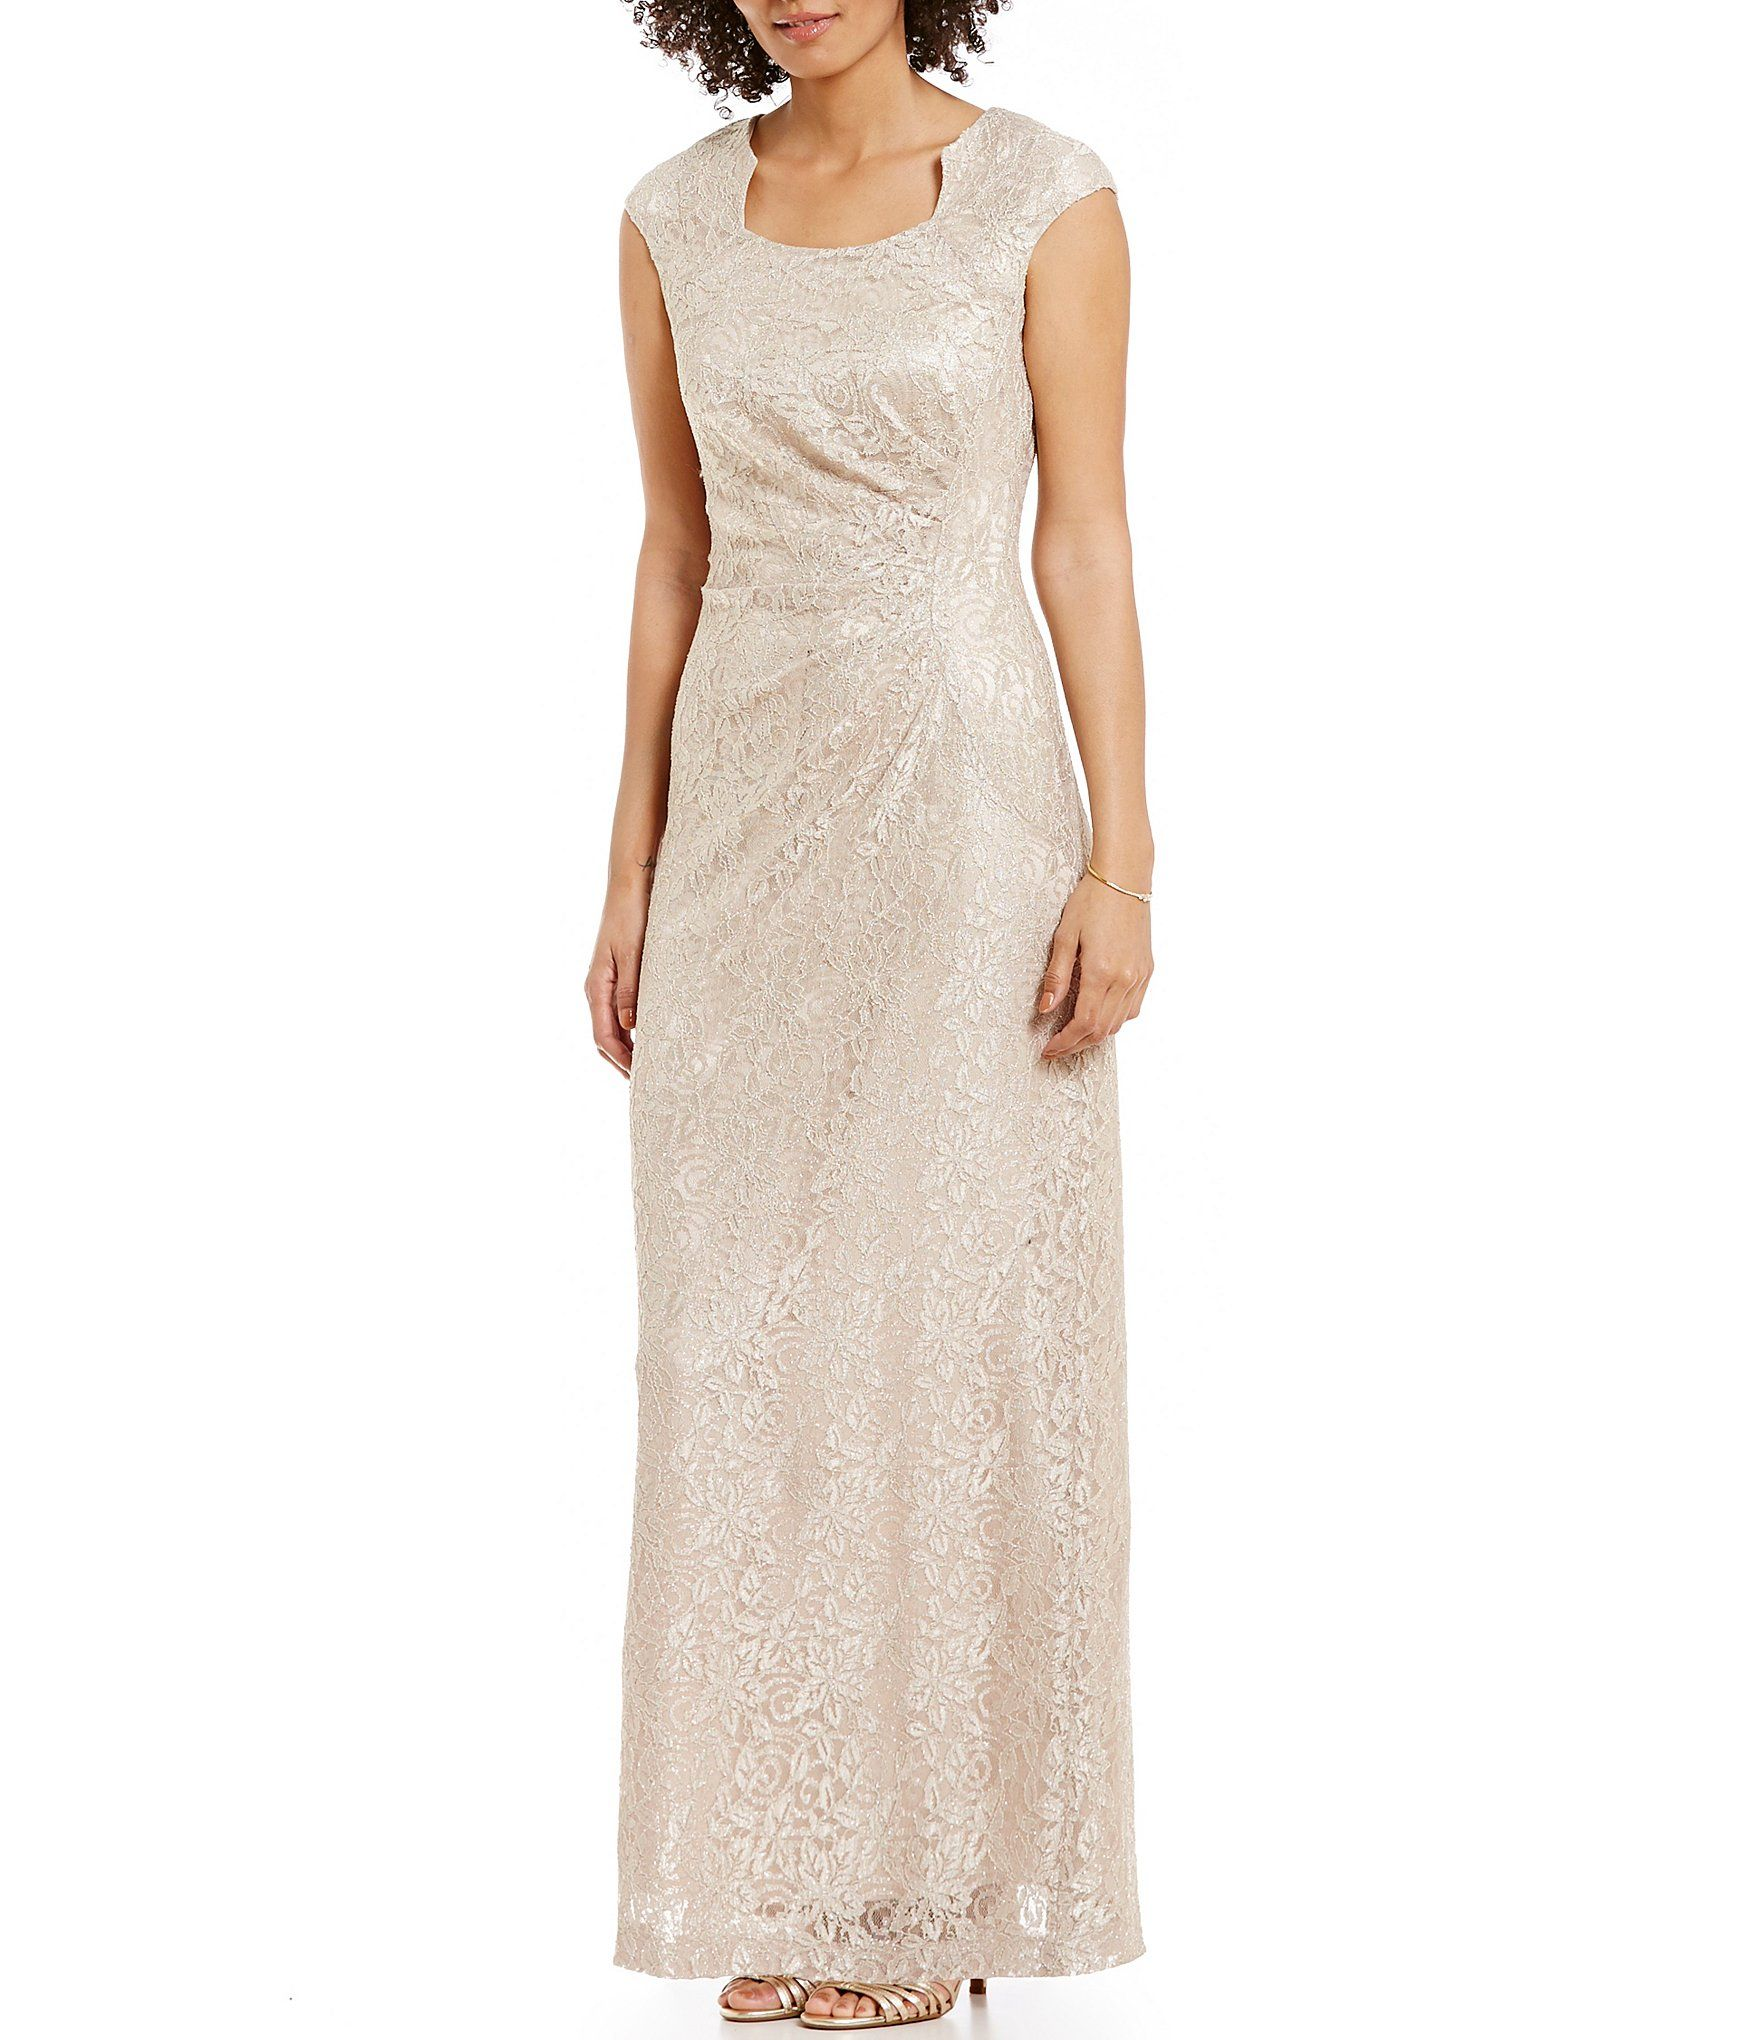 Tahari Asl Shimmer Stretch Lace Column Gown Dillard S Column Gown Gowns Lace Gown [ 2040 x 1760 Pixel ]